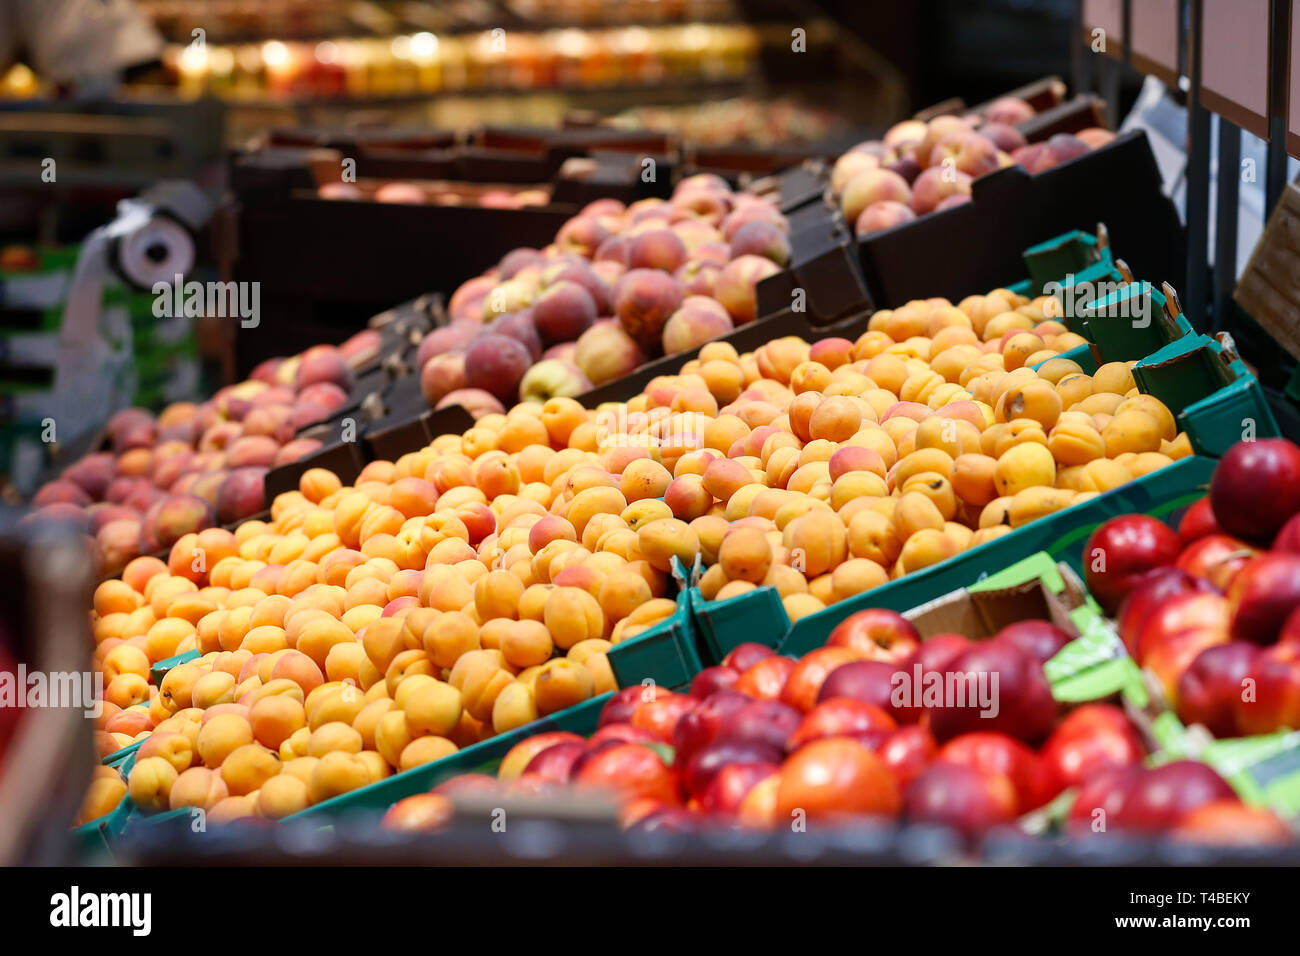 Unpacked, fresh fruits in a self-service supermarket. Zero-waste movement and philosophy, sustainable trade and organic grocery concept. - Stock Image